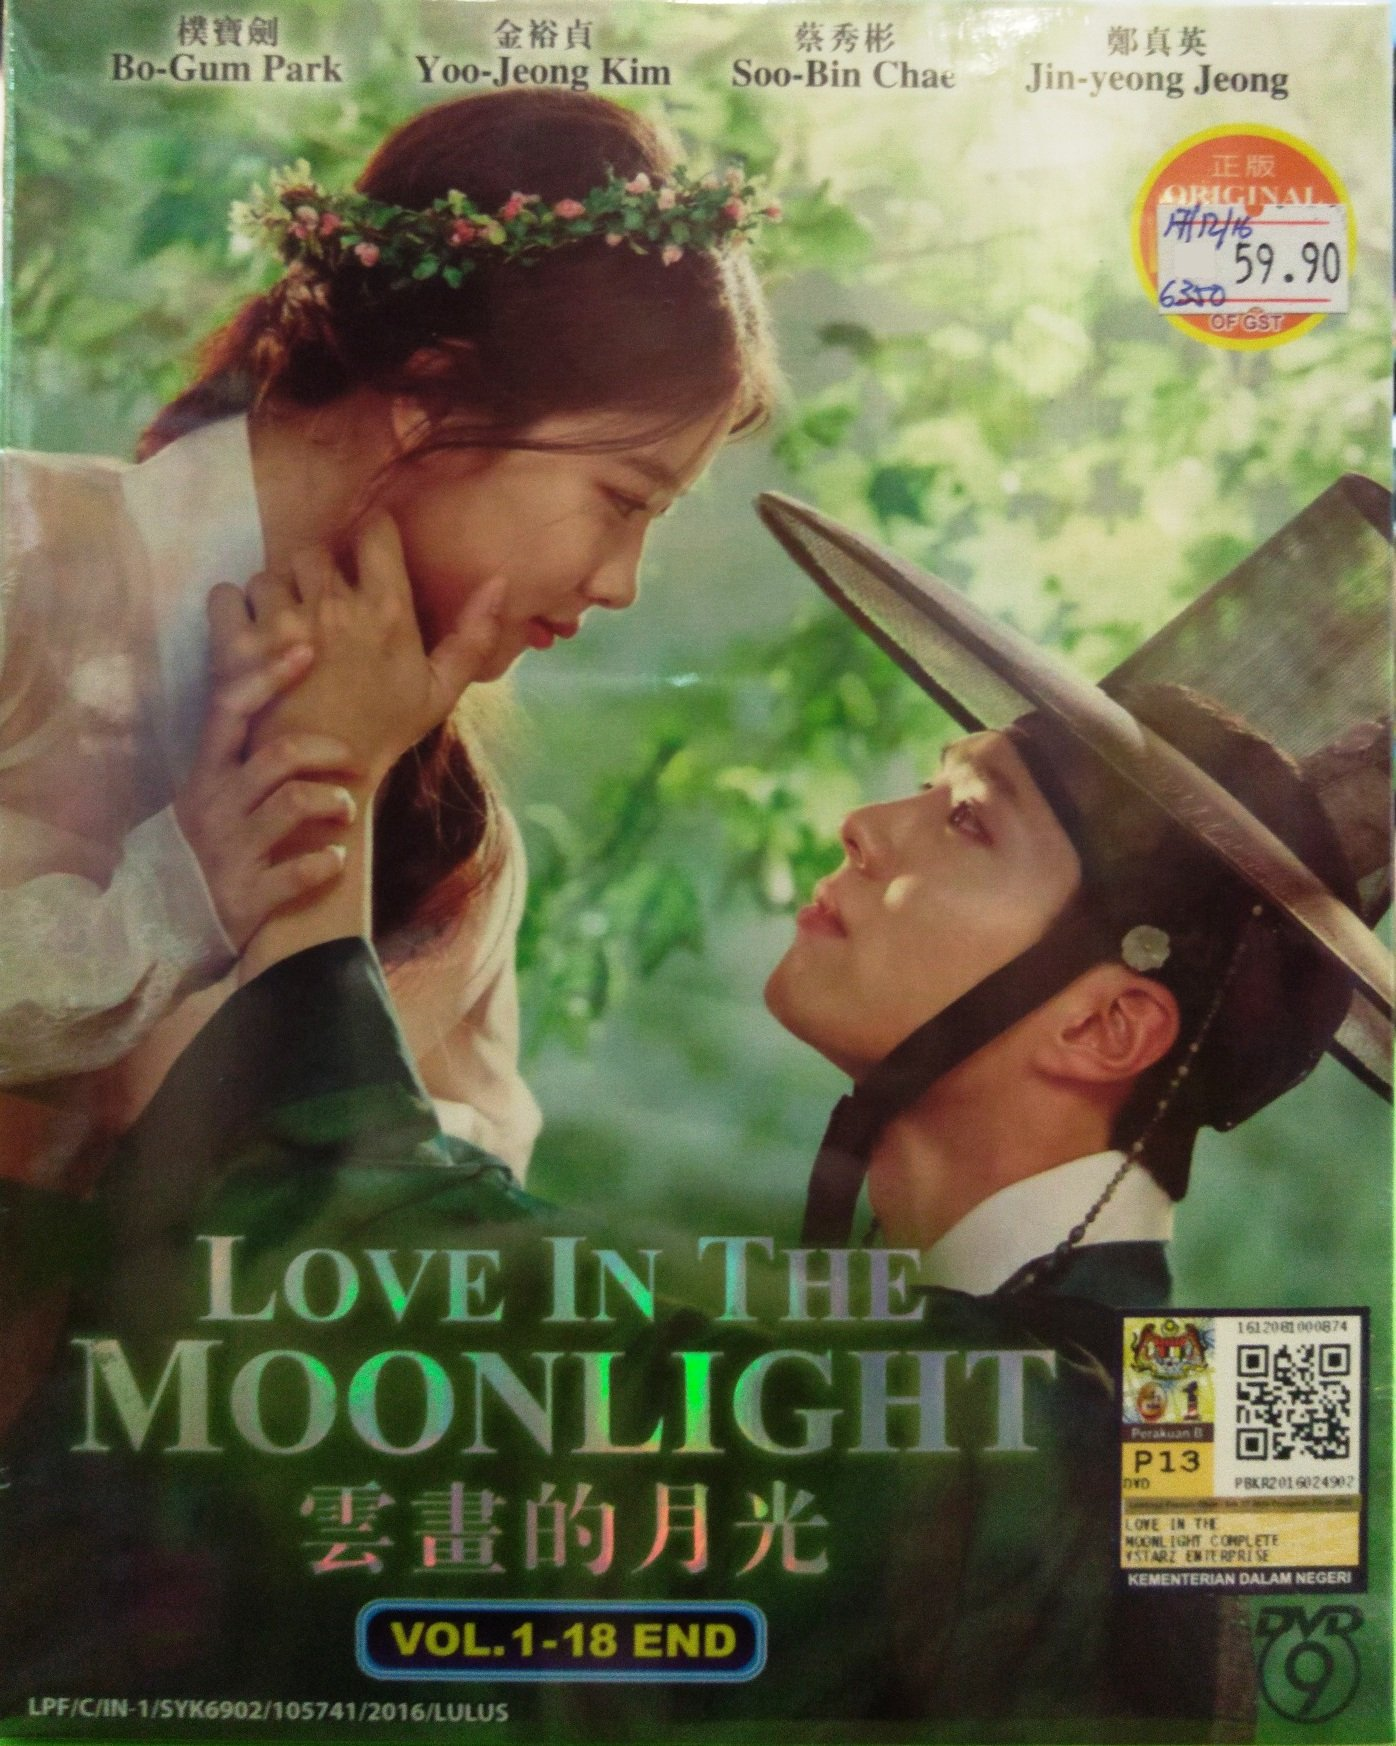 LOVE IN THE MOONLIGHT - COMPLETE KOREAN TV SERIES ( 1-18 EPISODES ) DVD BOX SETS by